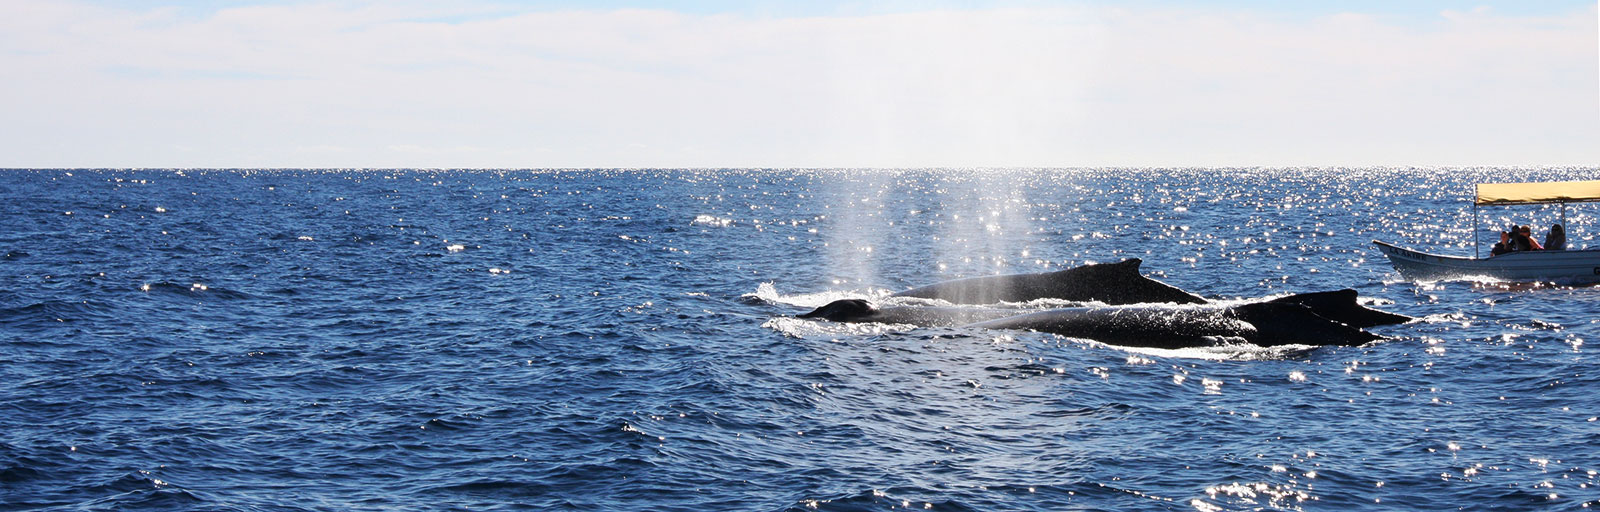 Whale Watching & Yoga Retreat in Mexico: a Pod of Whales in Cabo Bay